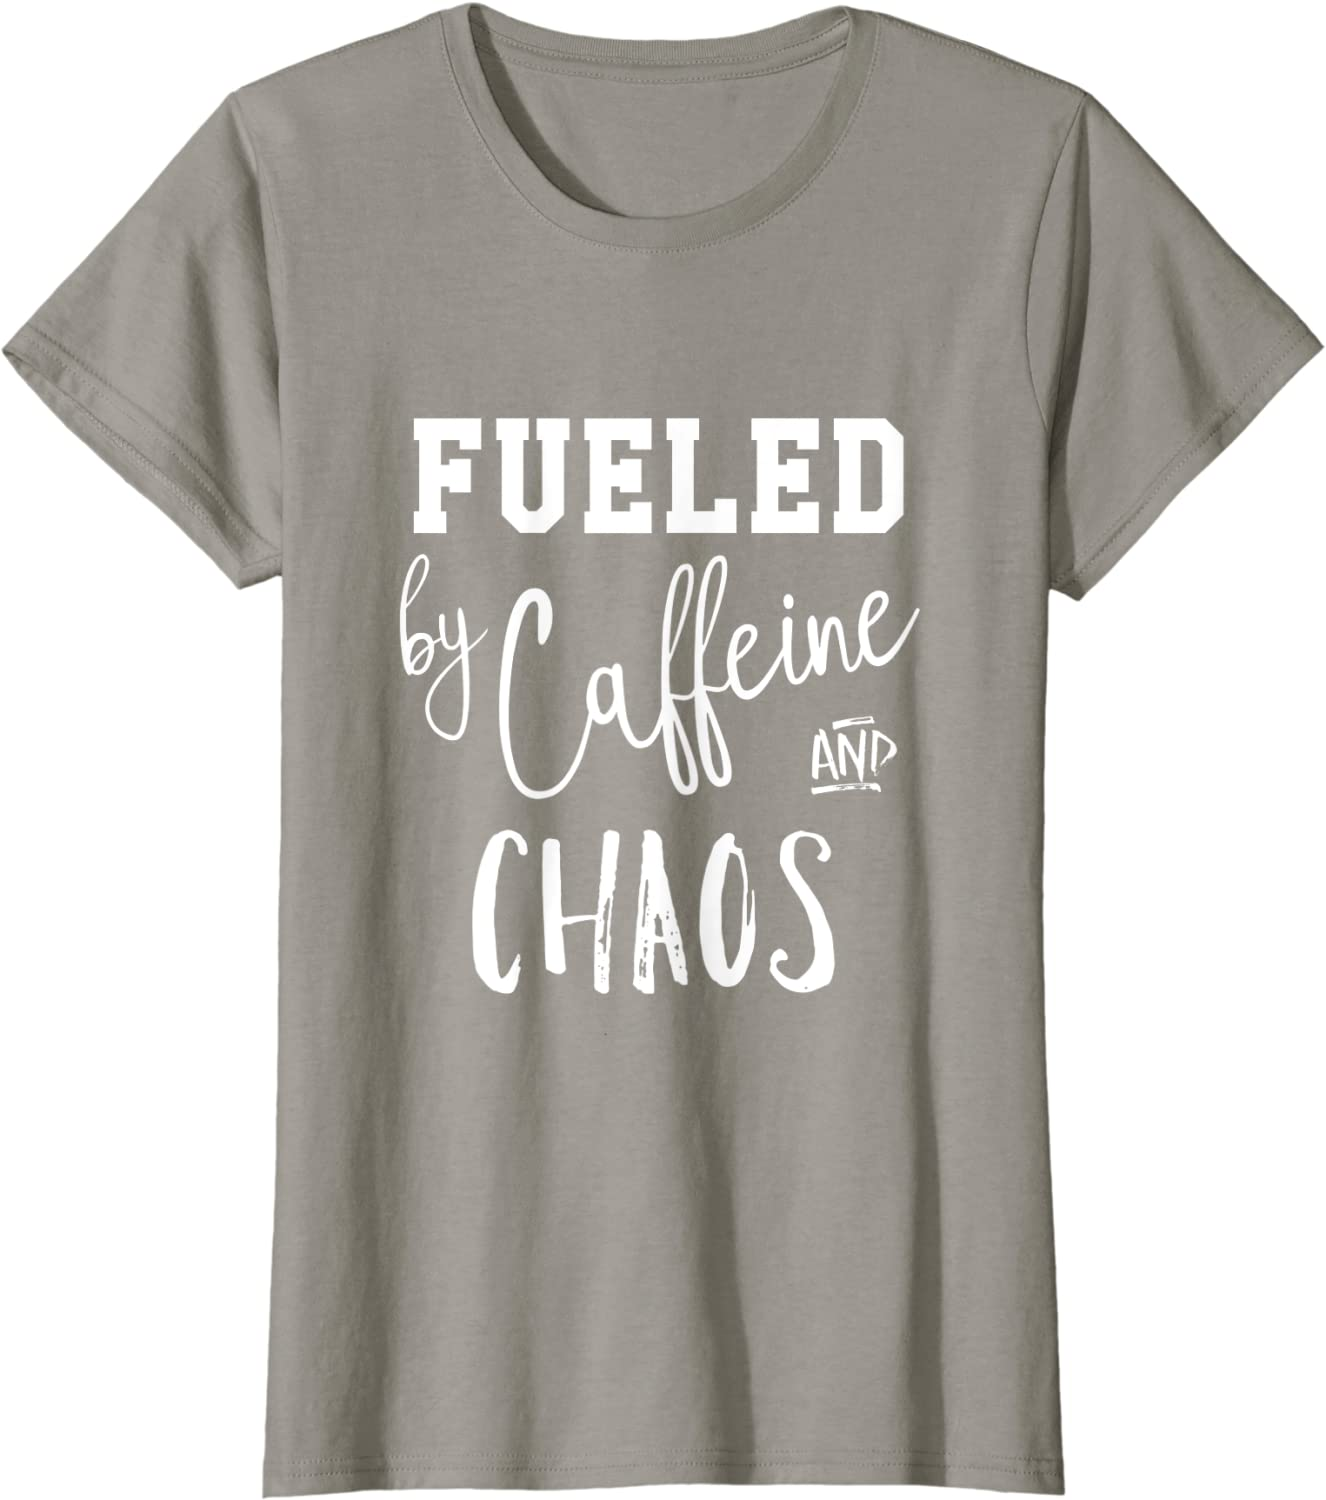 Fueled by caffeine and chaos women/'s fitted hoodie